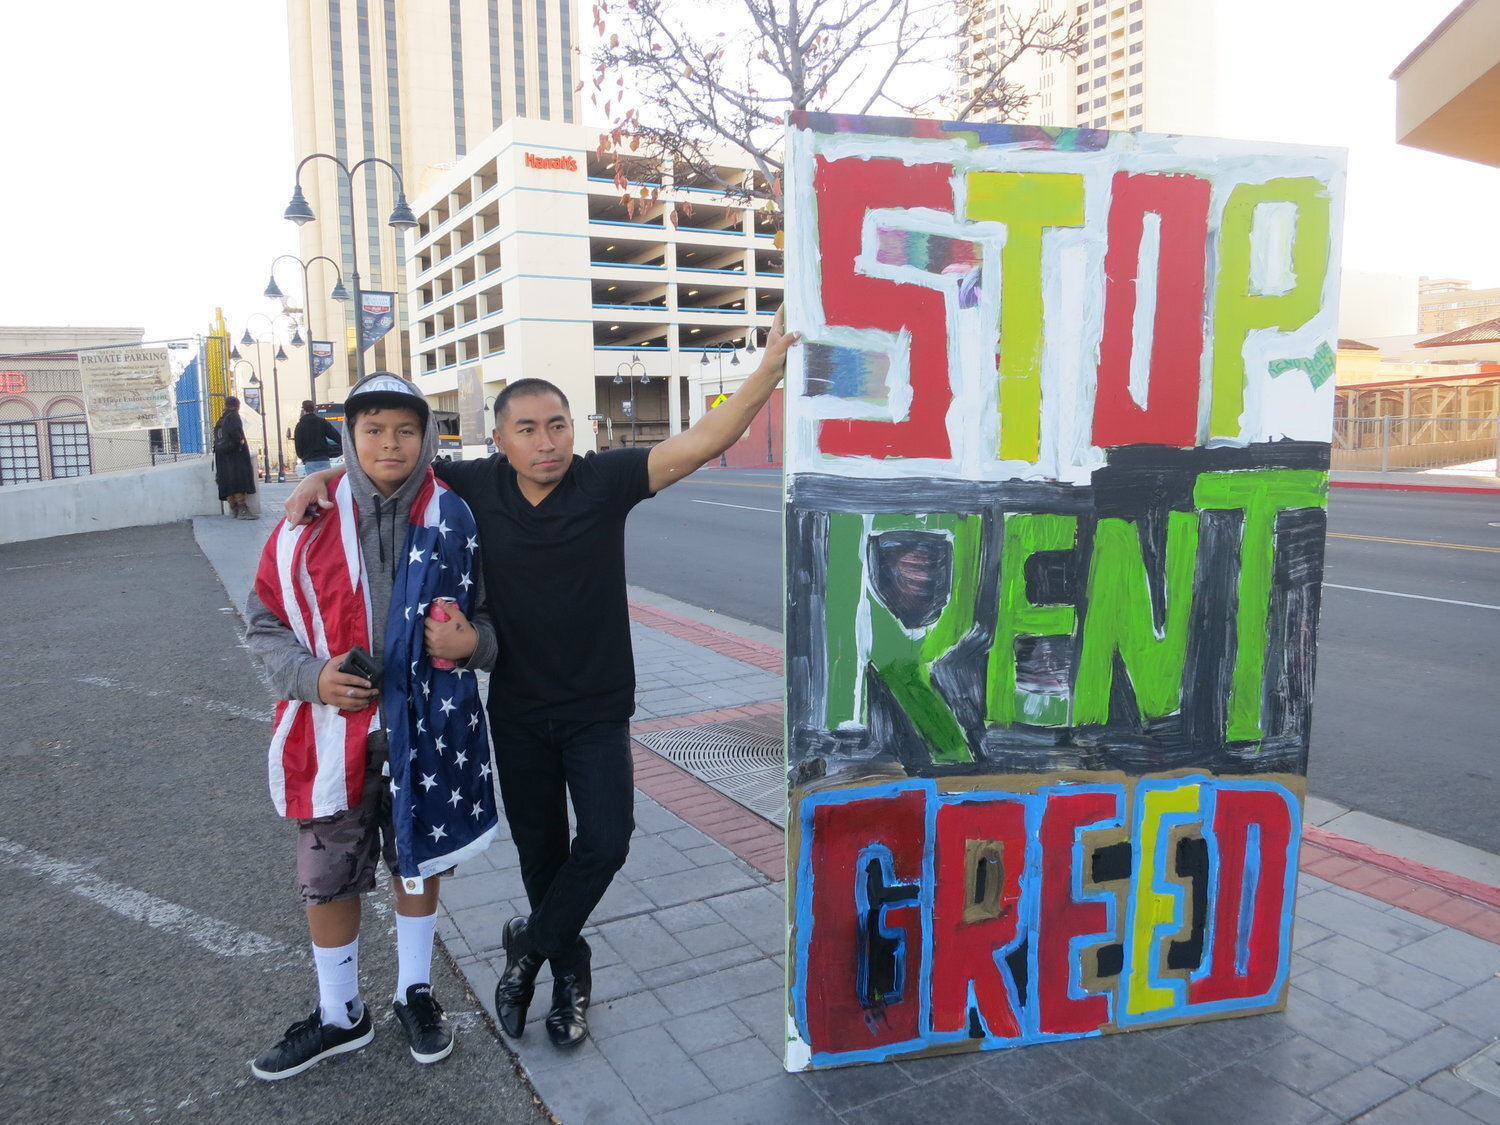 There have been repeated protests in Reno over rising rents, blaming both landlords and also politicians for not doing enough.